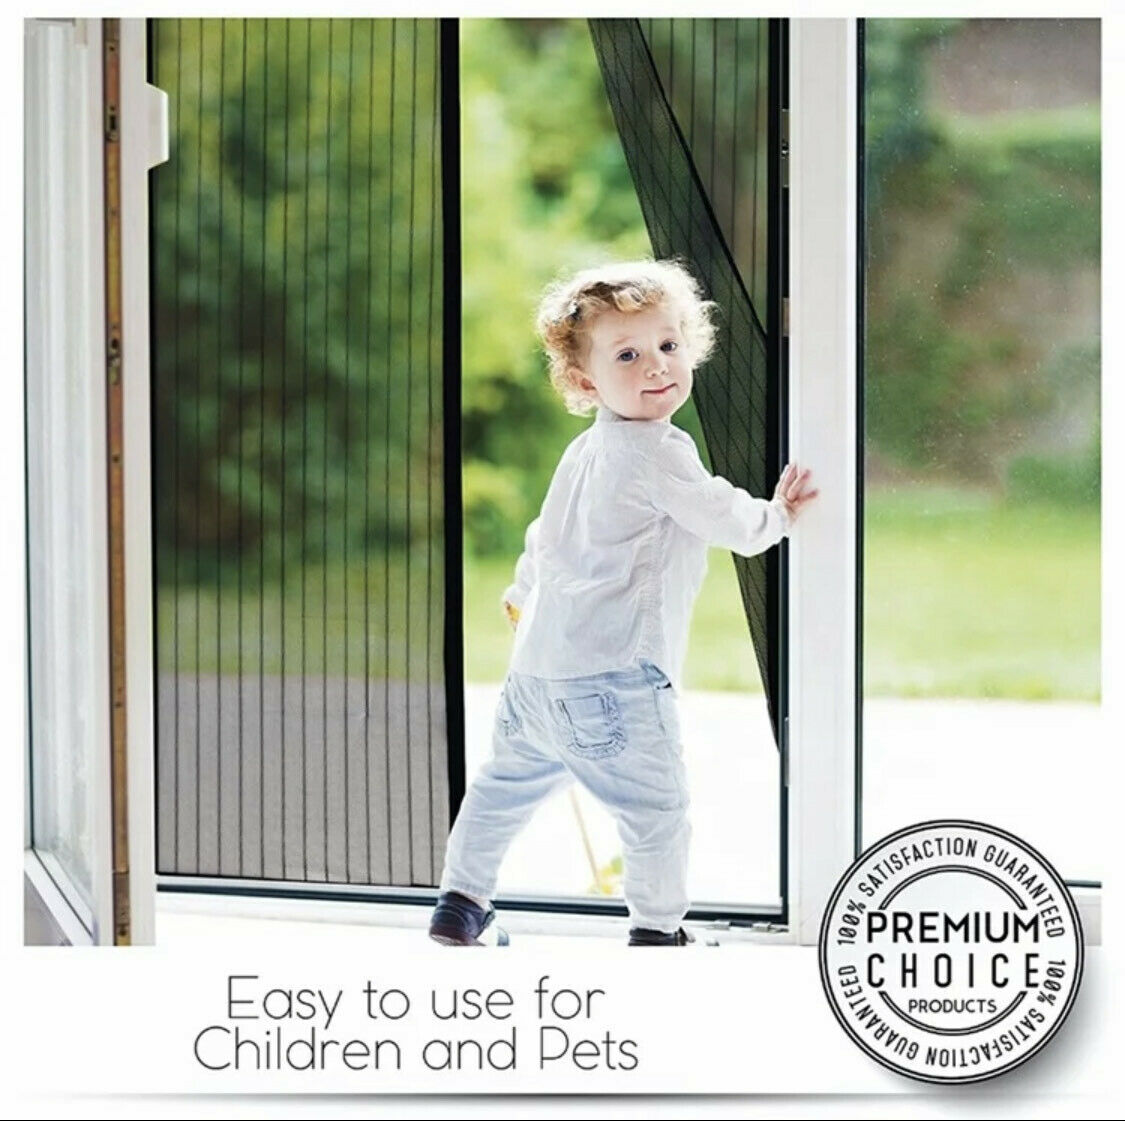 Magnetic Screen Door Magic Instant Mesh Screen Walk Through